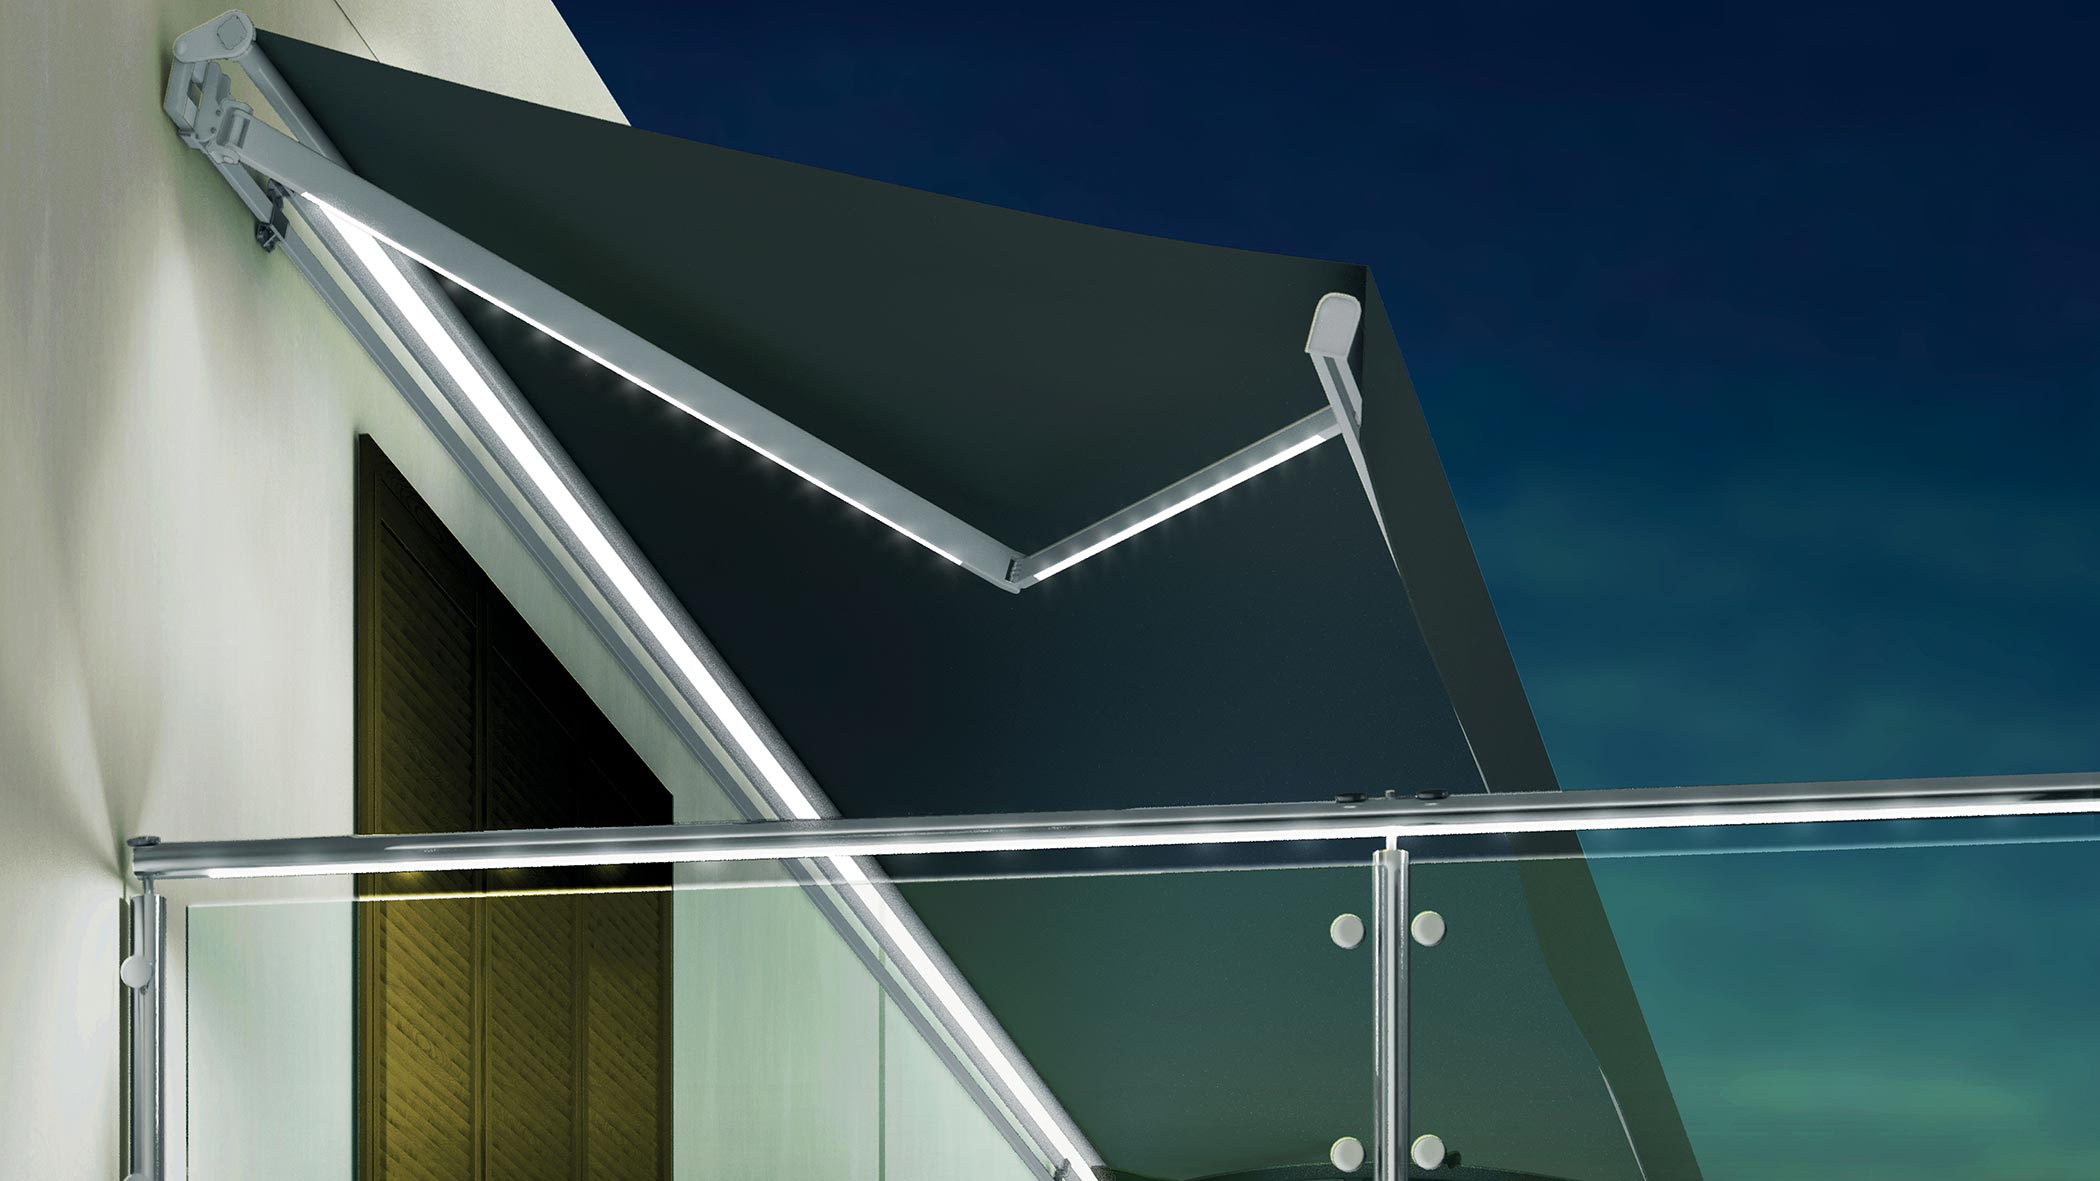 Awnings solutions - Teleco